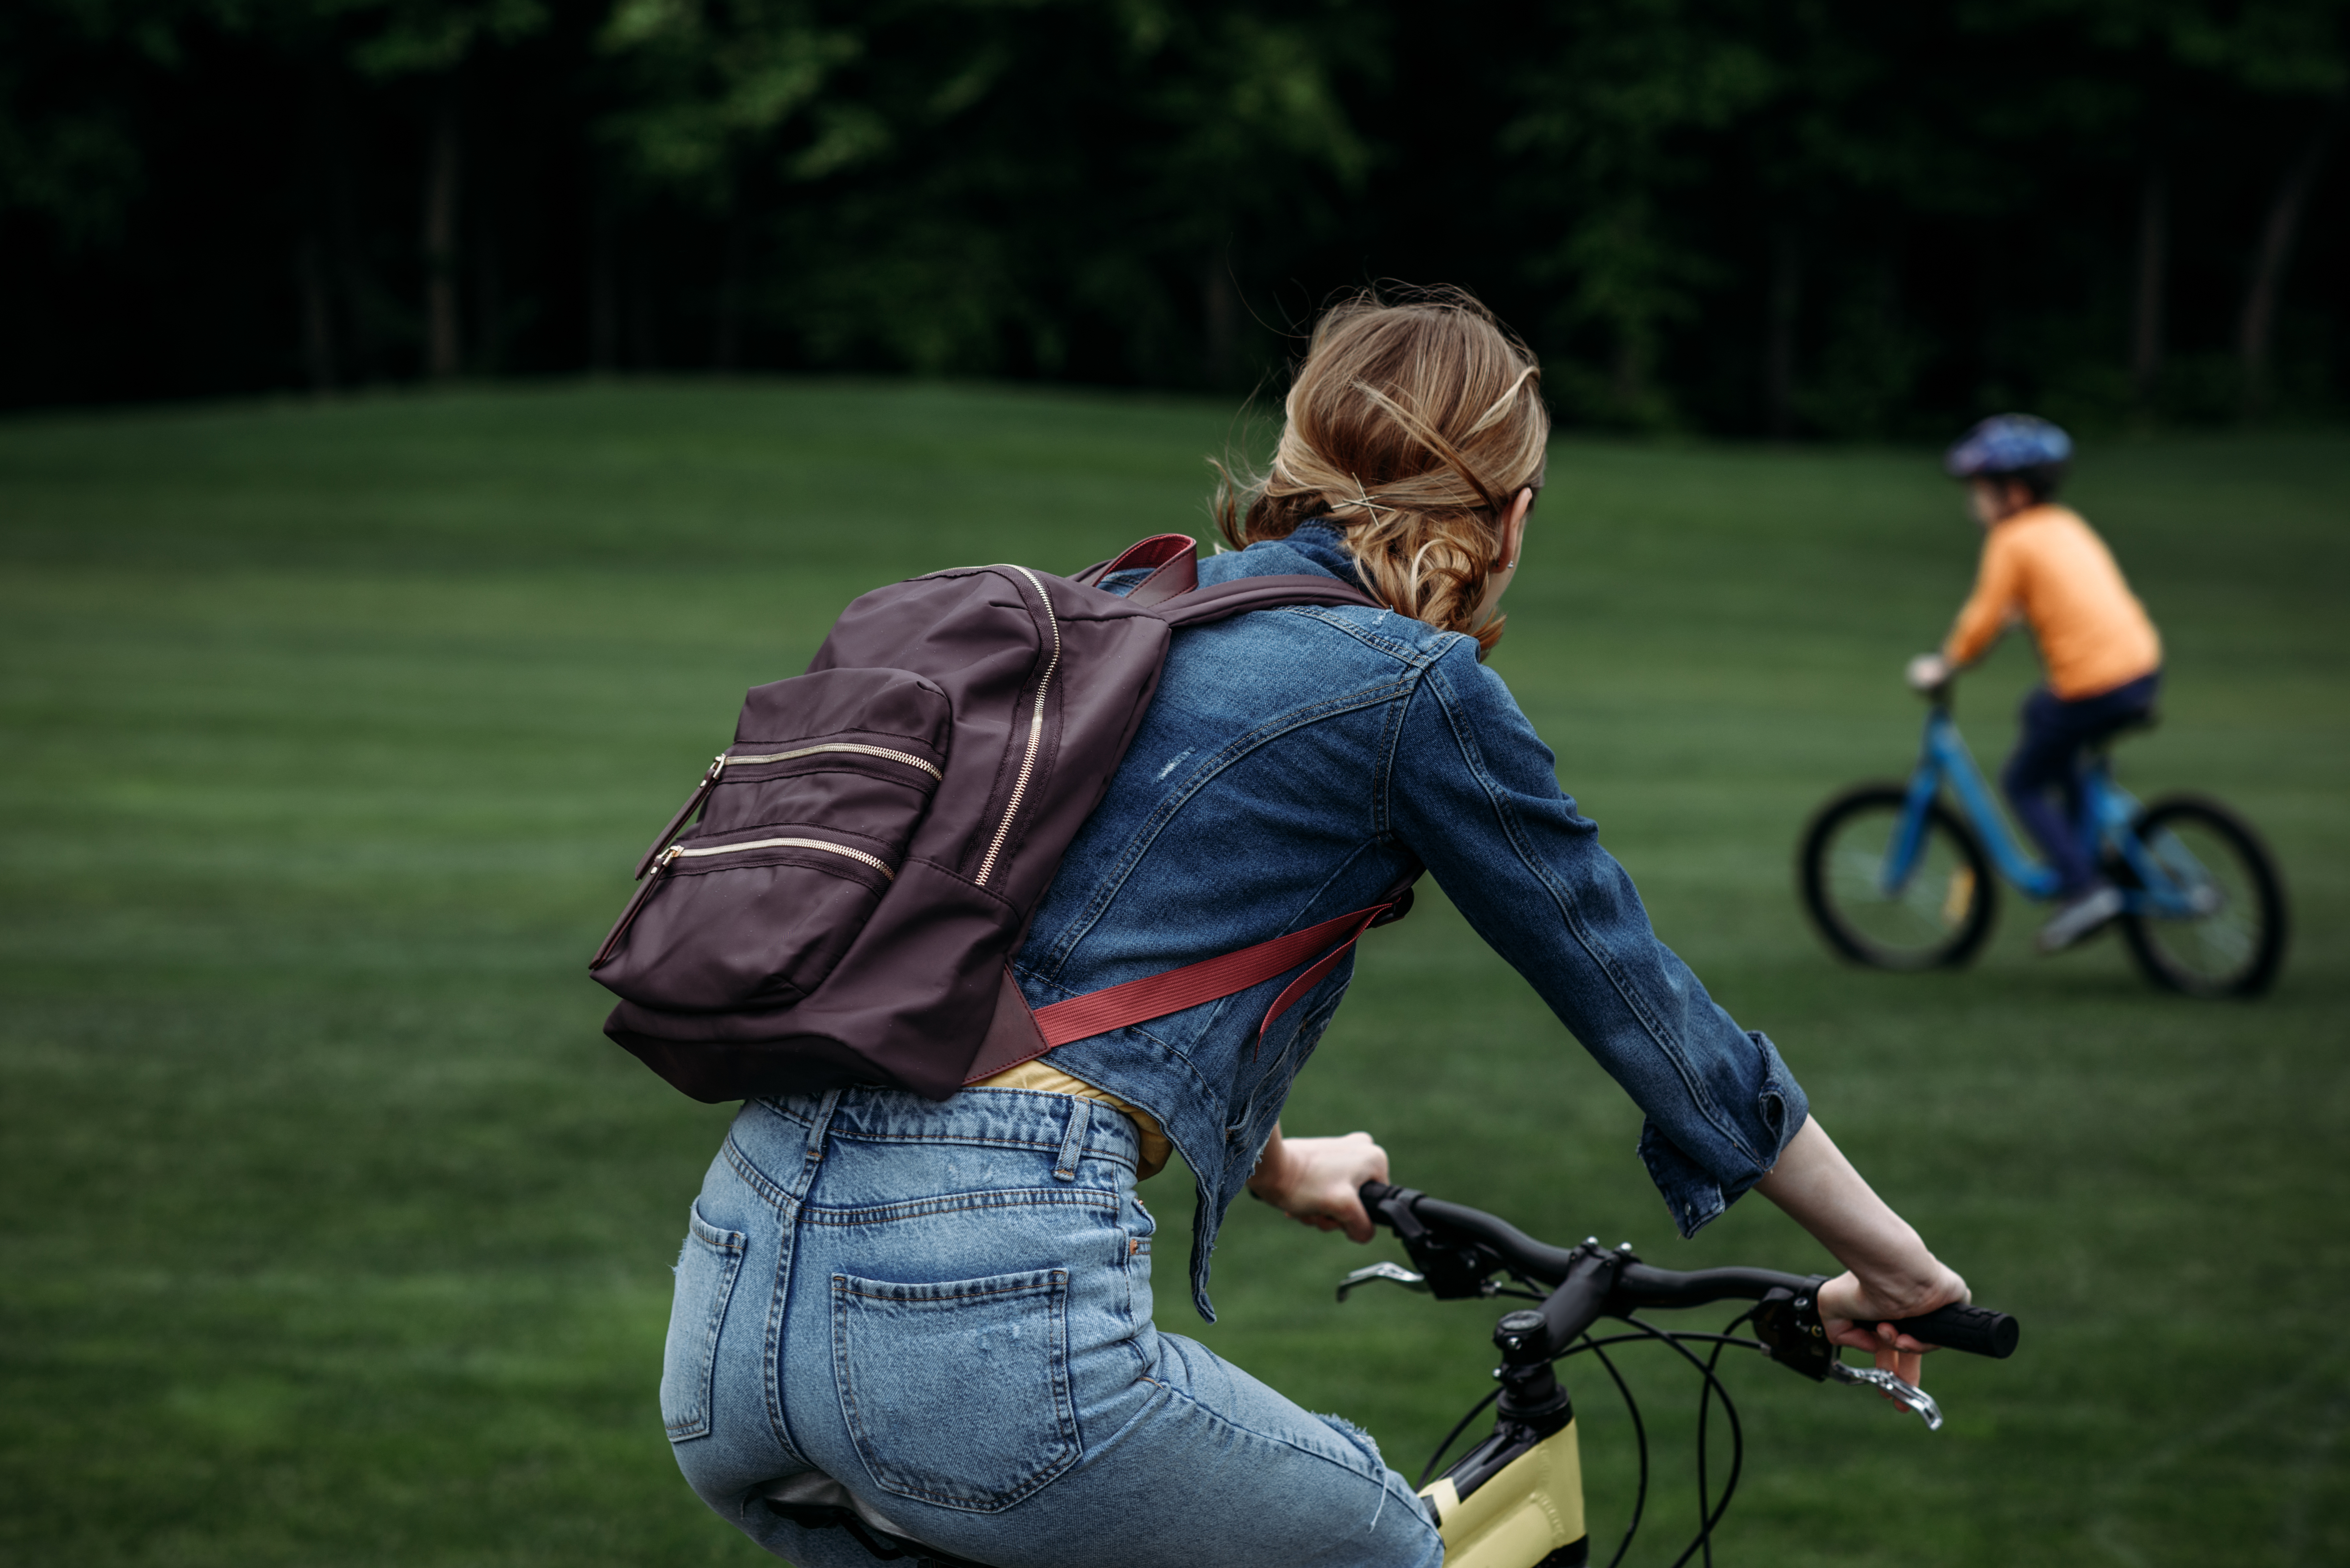 Lady riding a bike with a nephew or son outdoors